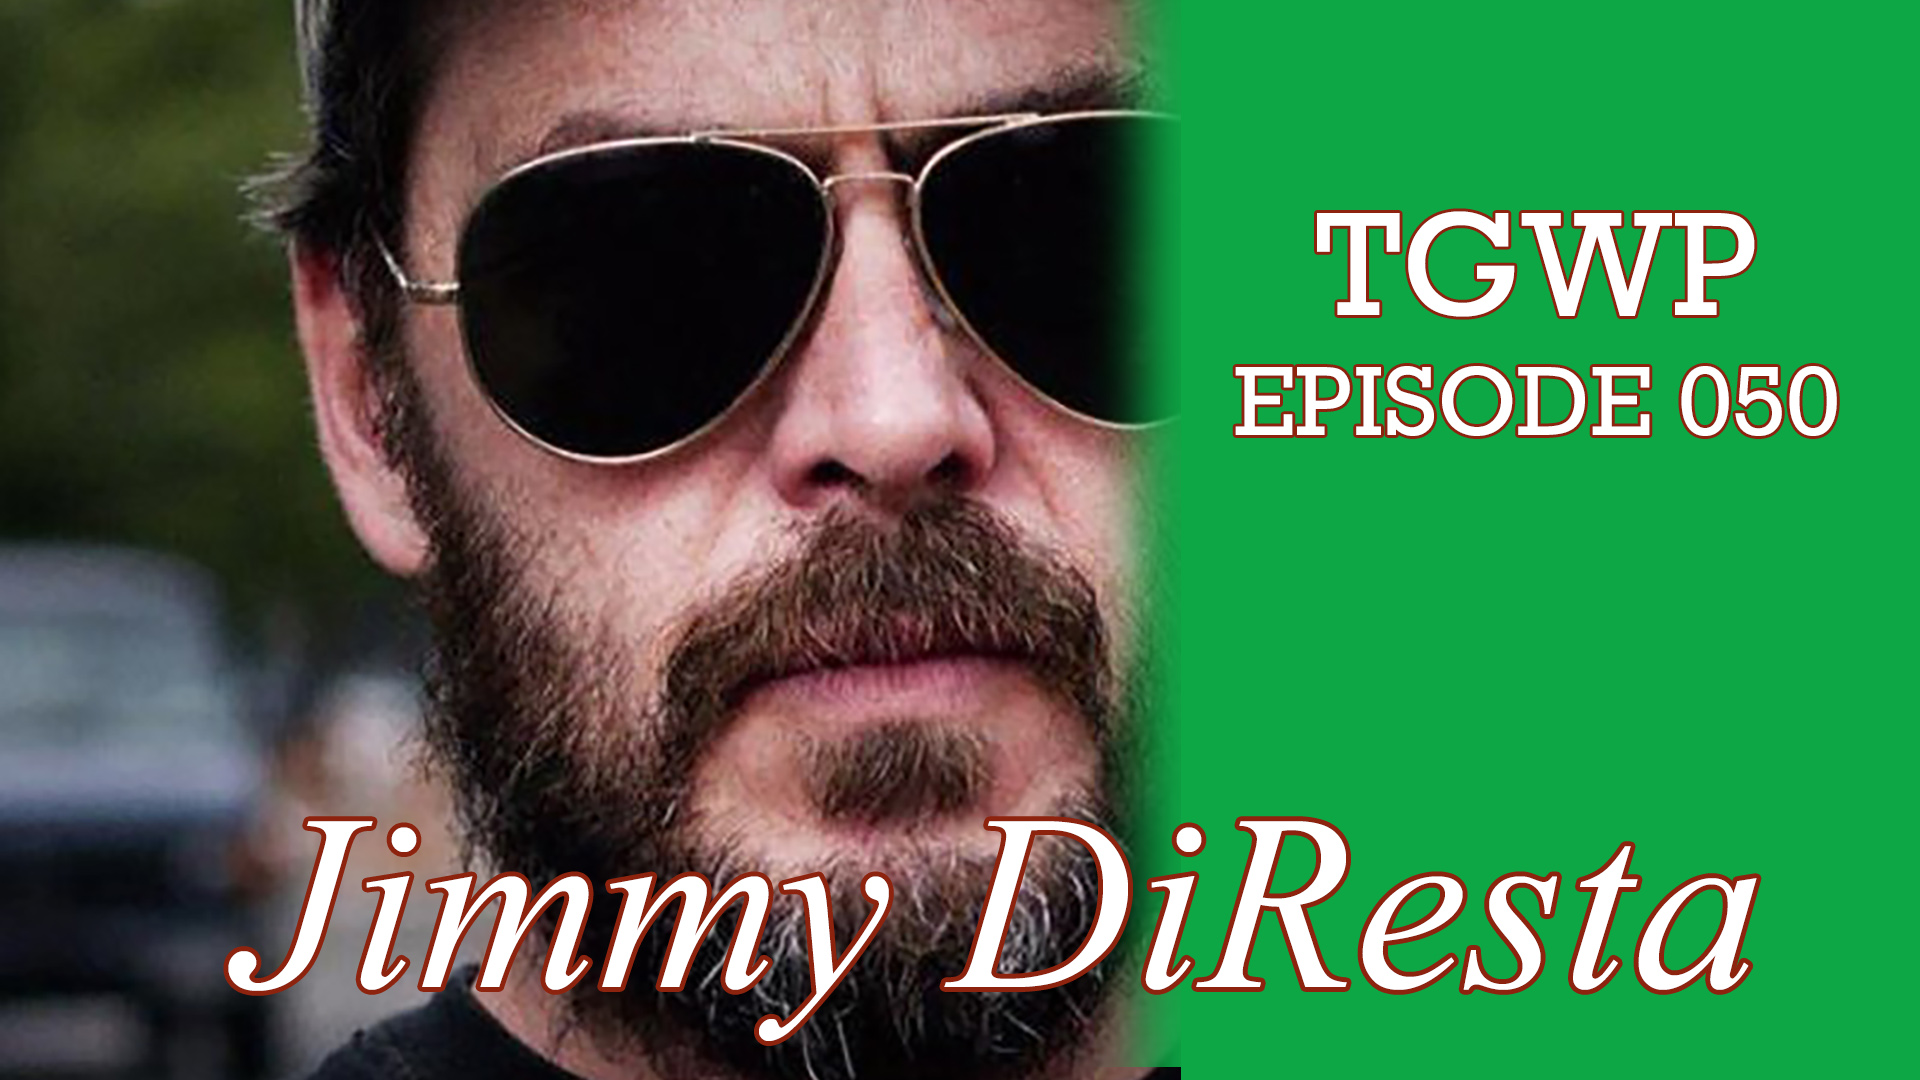 TGWP Episode 050- Chatting with Jimmy DiResta